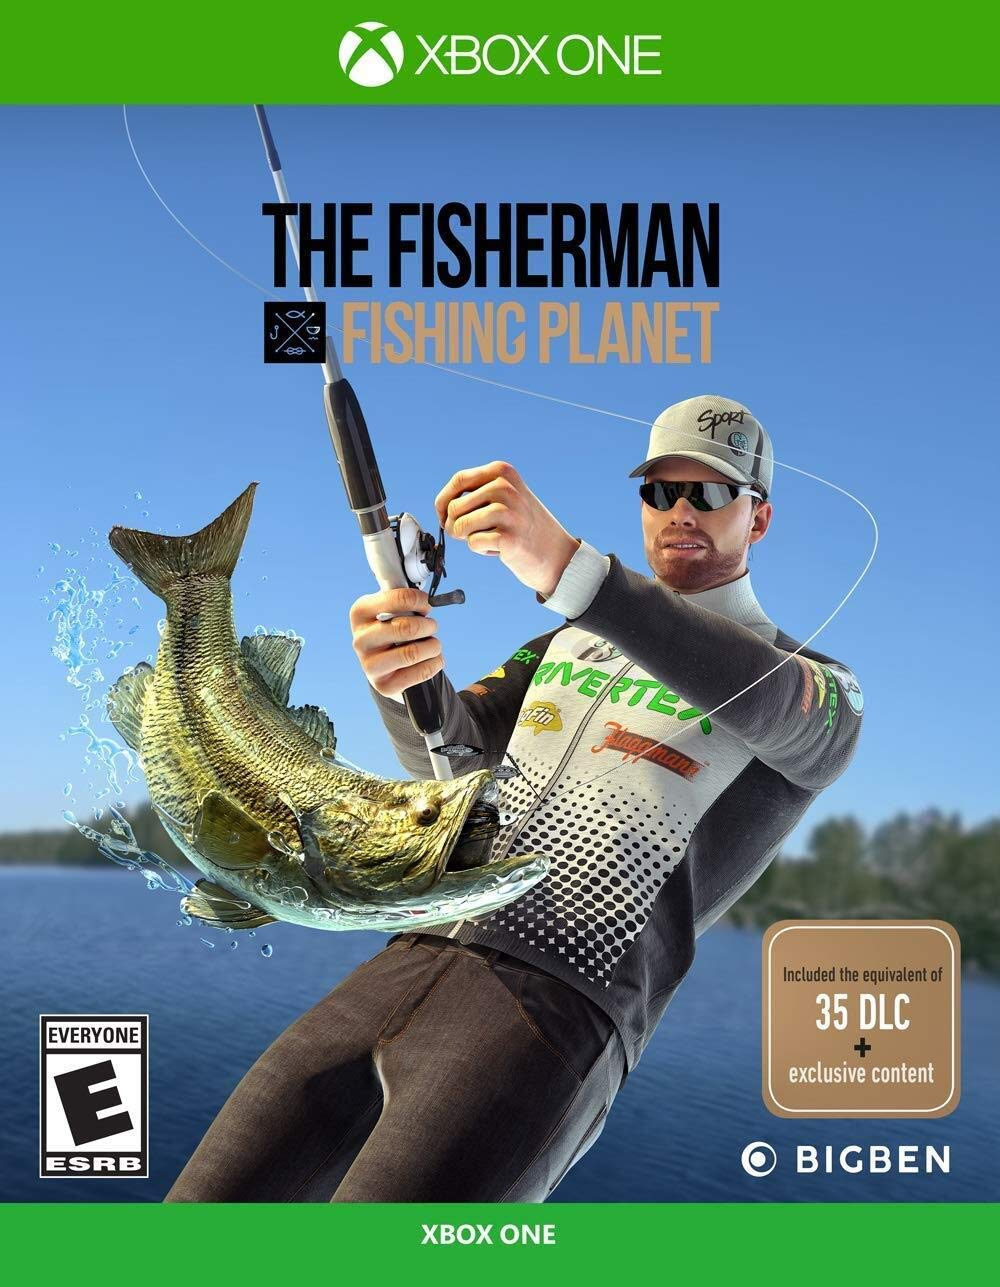 The Fisherman: Fishing Planet (Xb1) - Xbox One